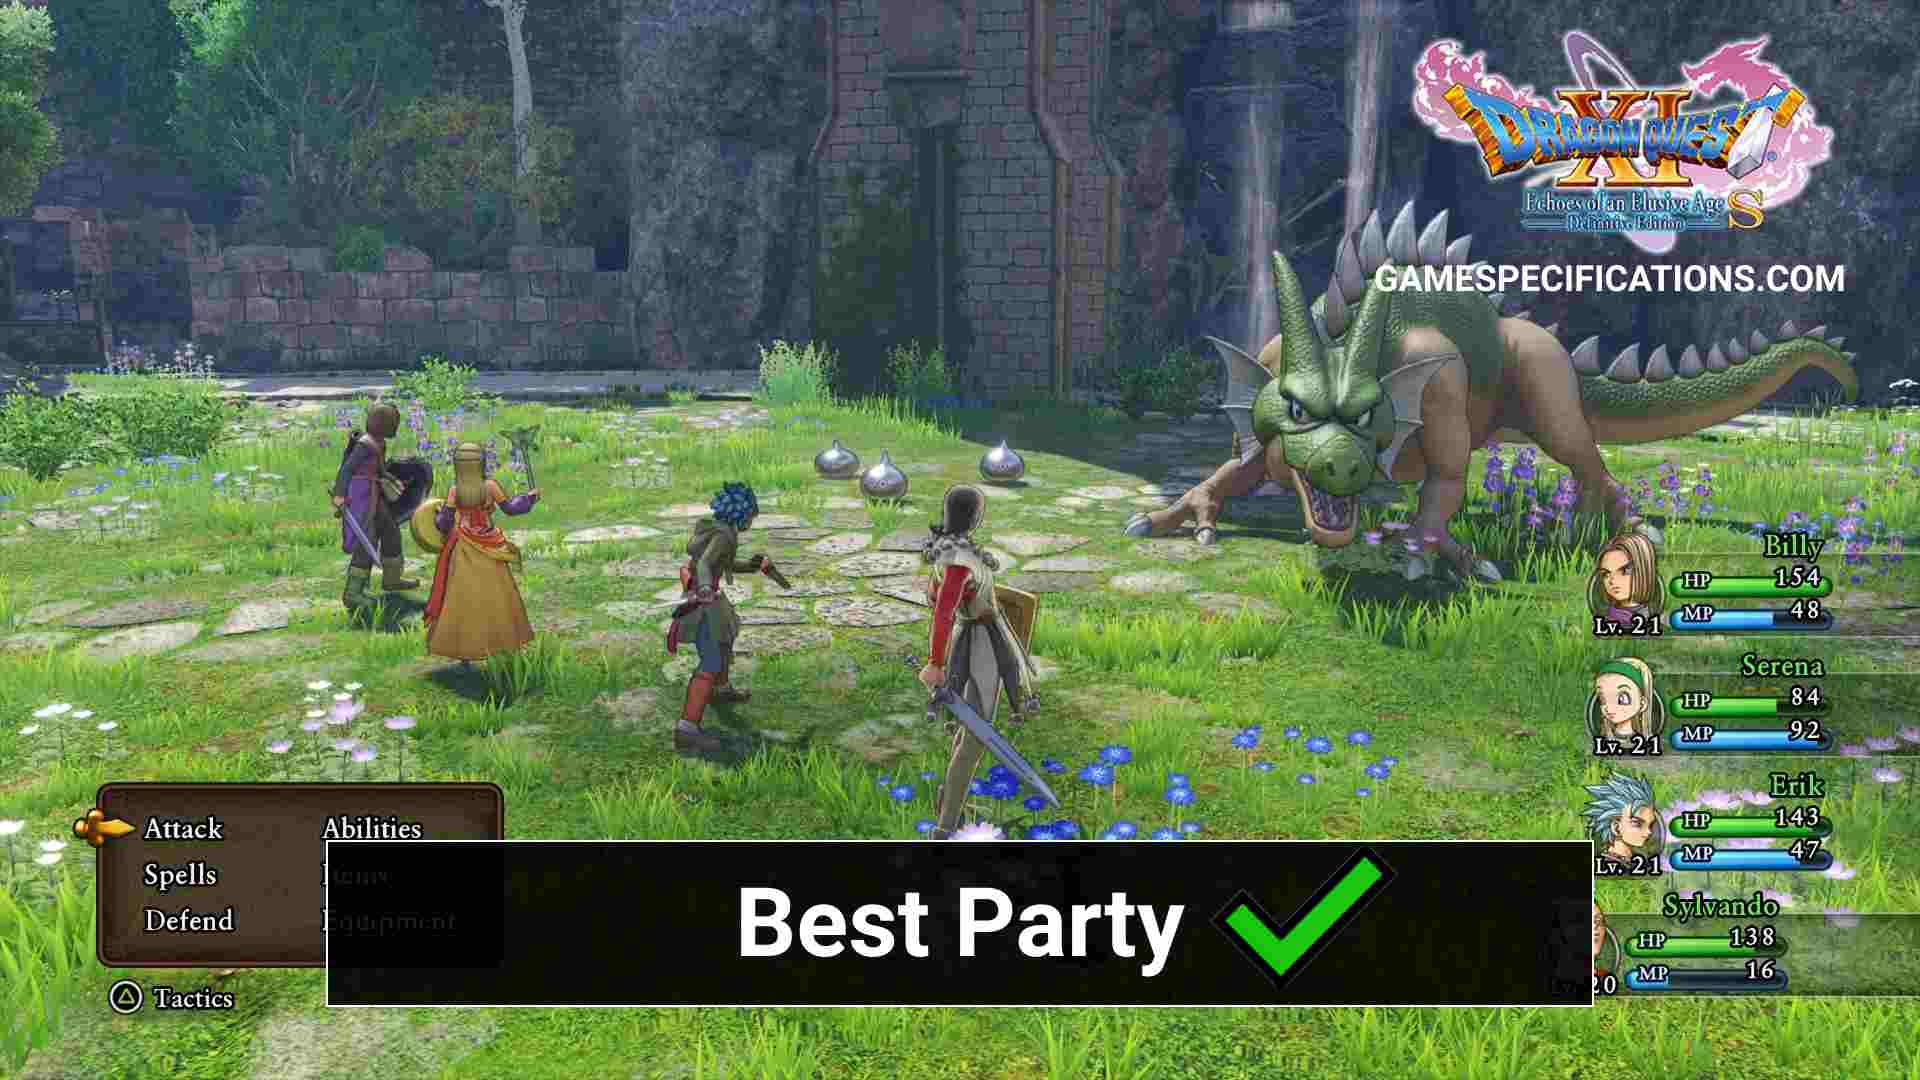 Dragon Quest 11 Best Party Guide Game Specifications